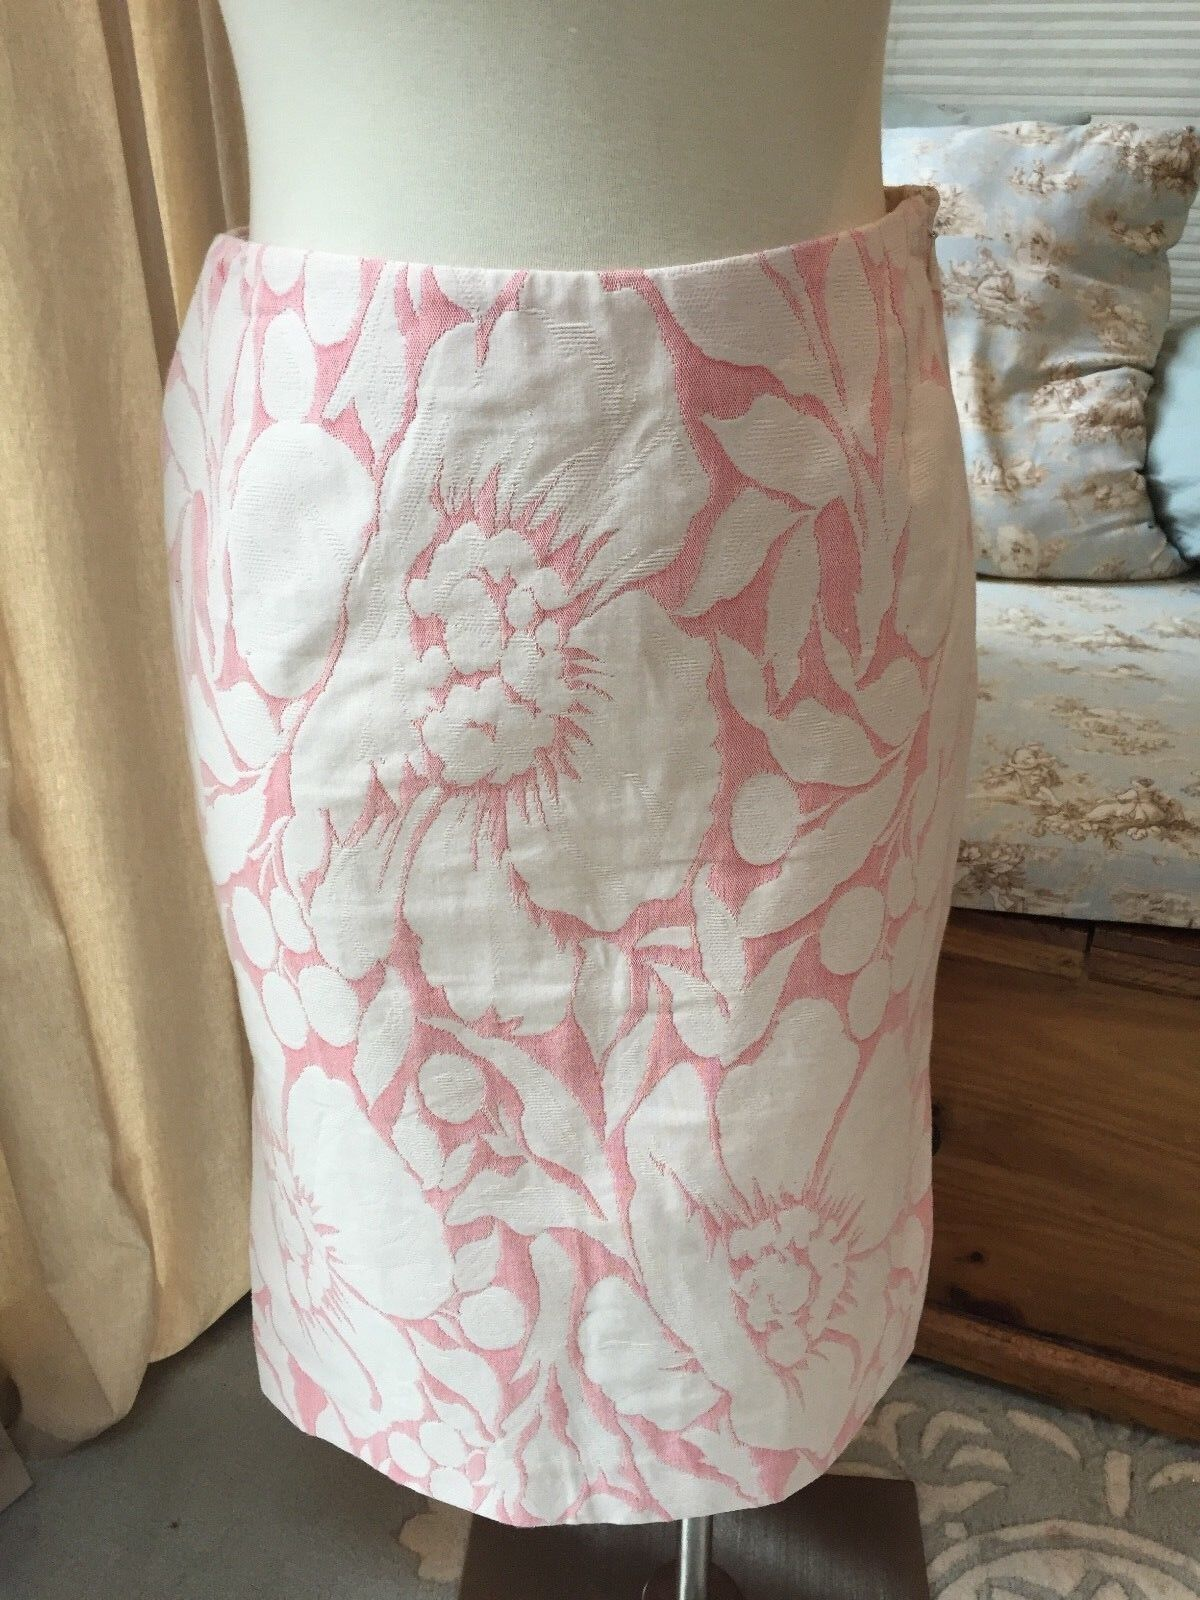 J. Crew Pink Ivory Jacquard Brocade Textured Floral Pencil Skirt 4 Excellent